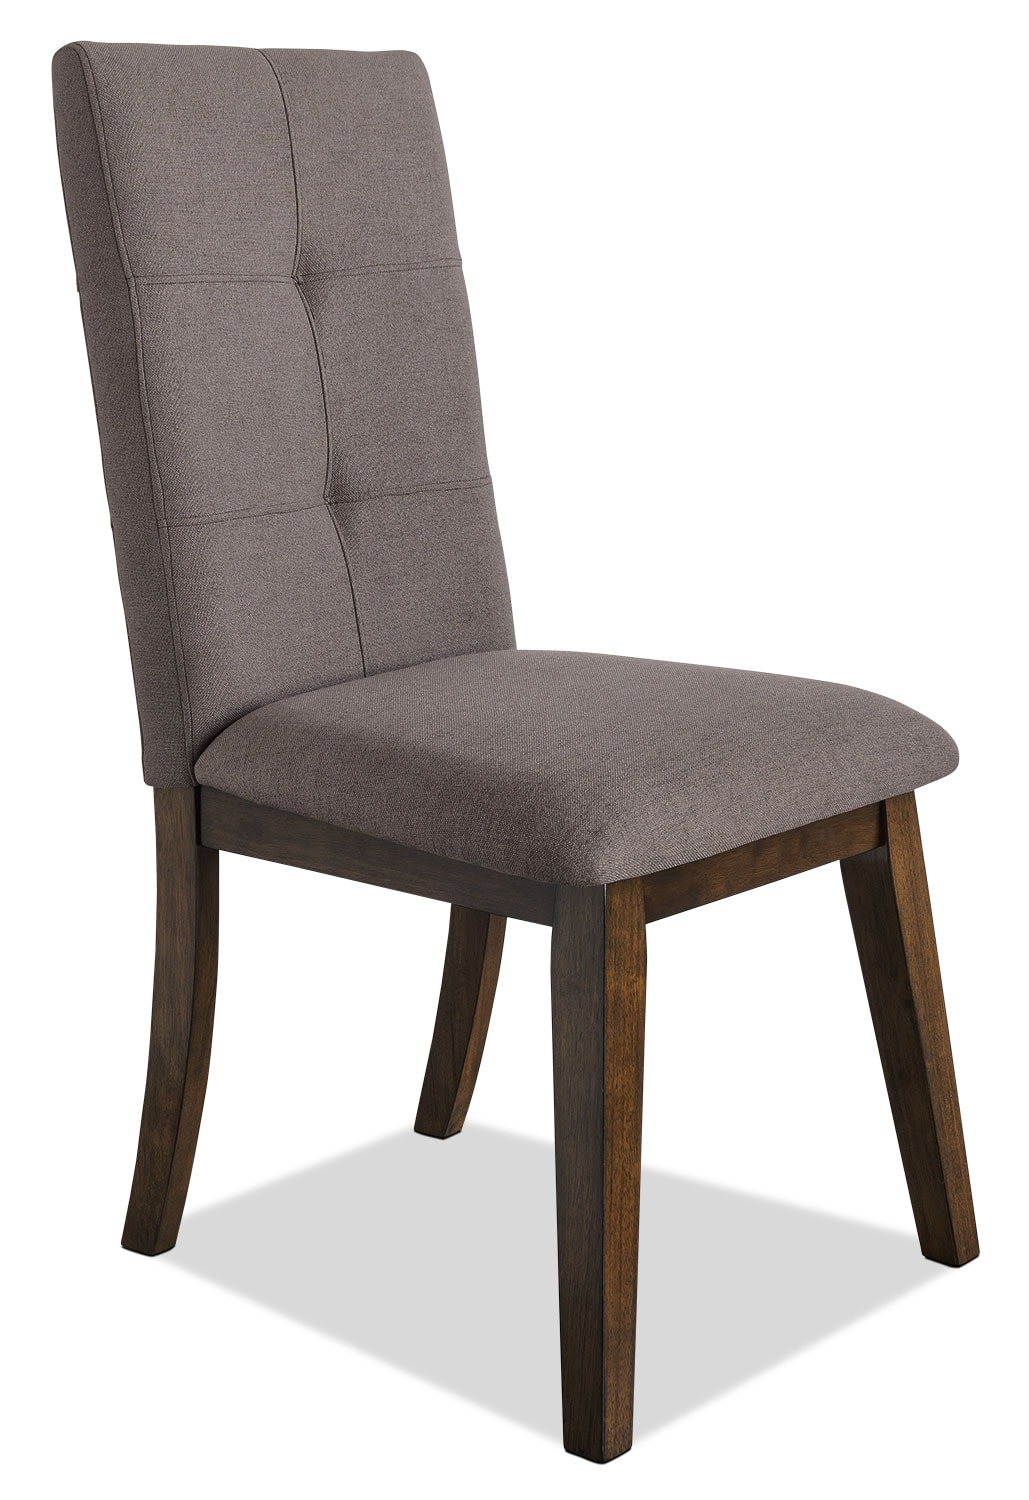 Chelsea Fabric Dining Chair – Brown